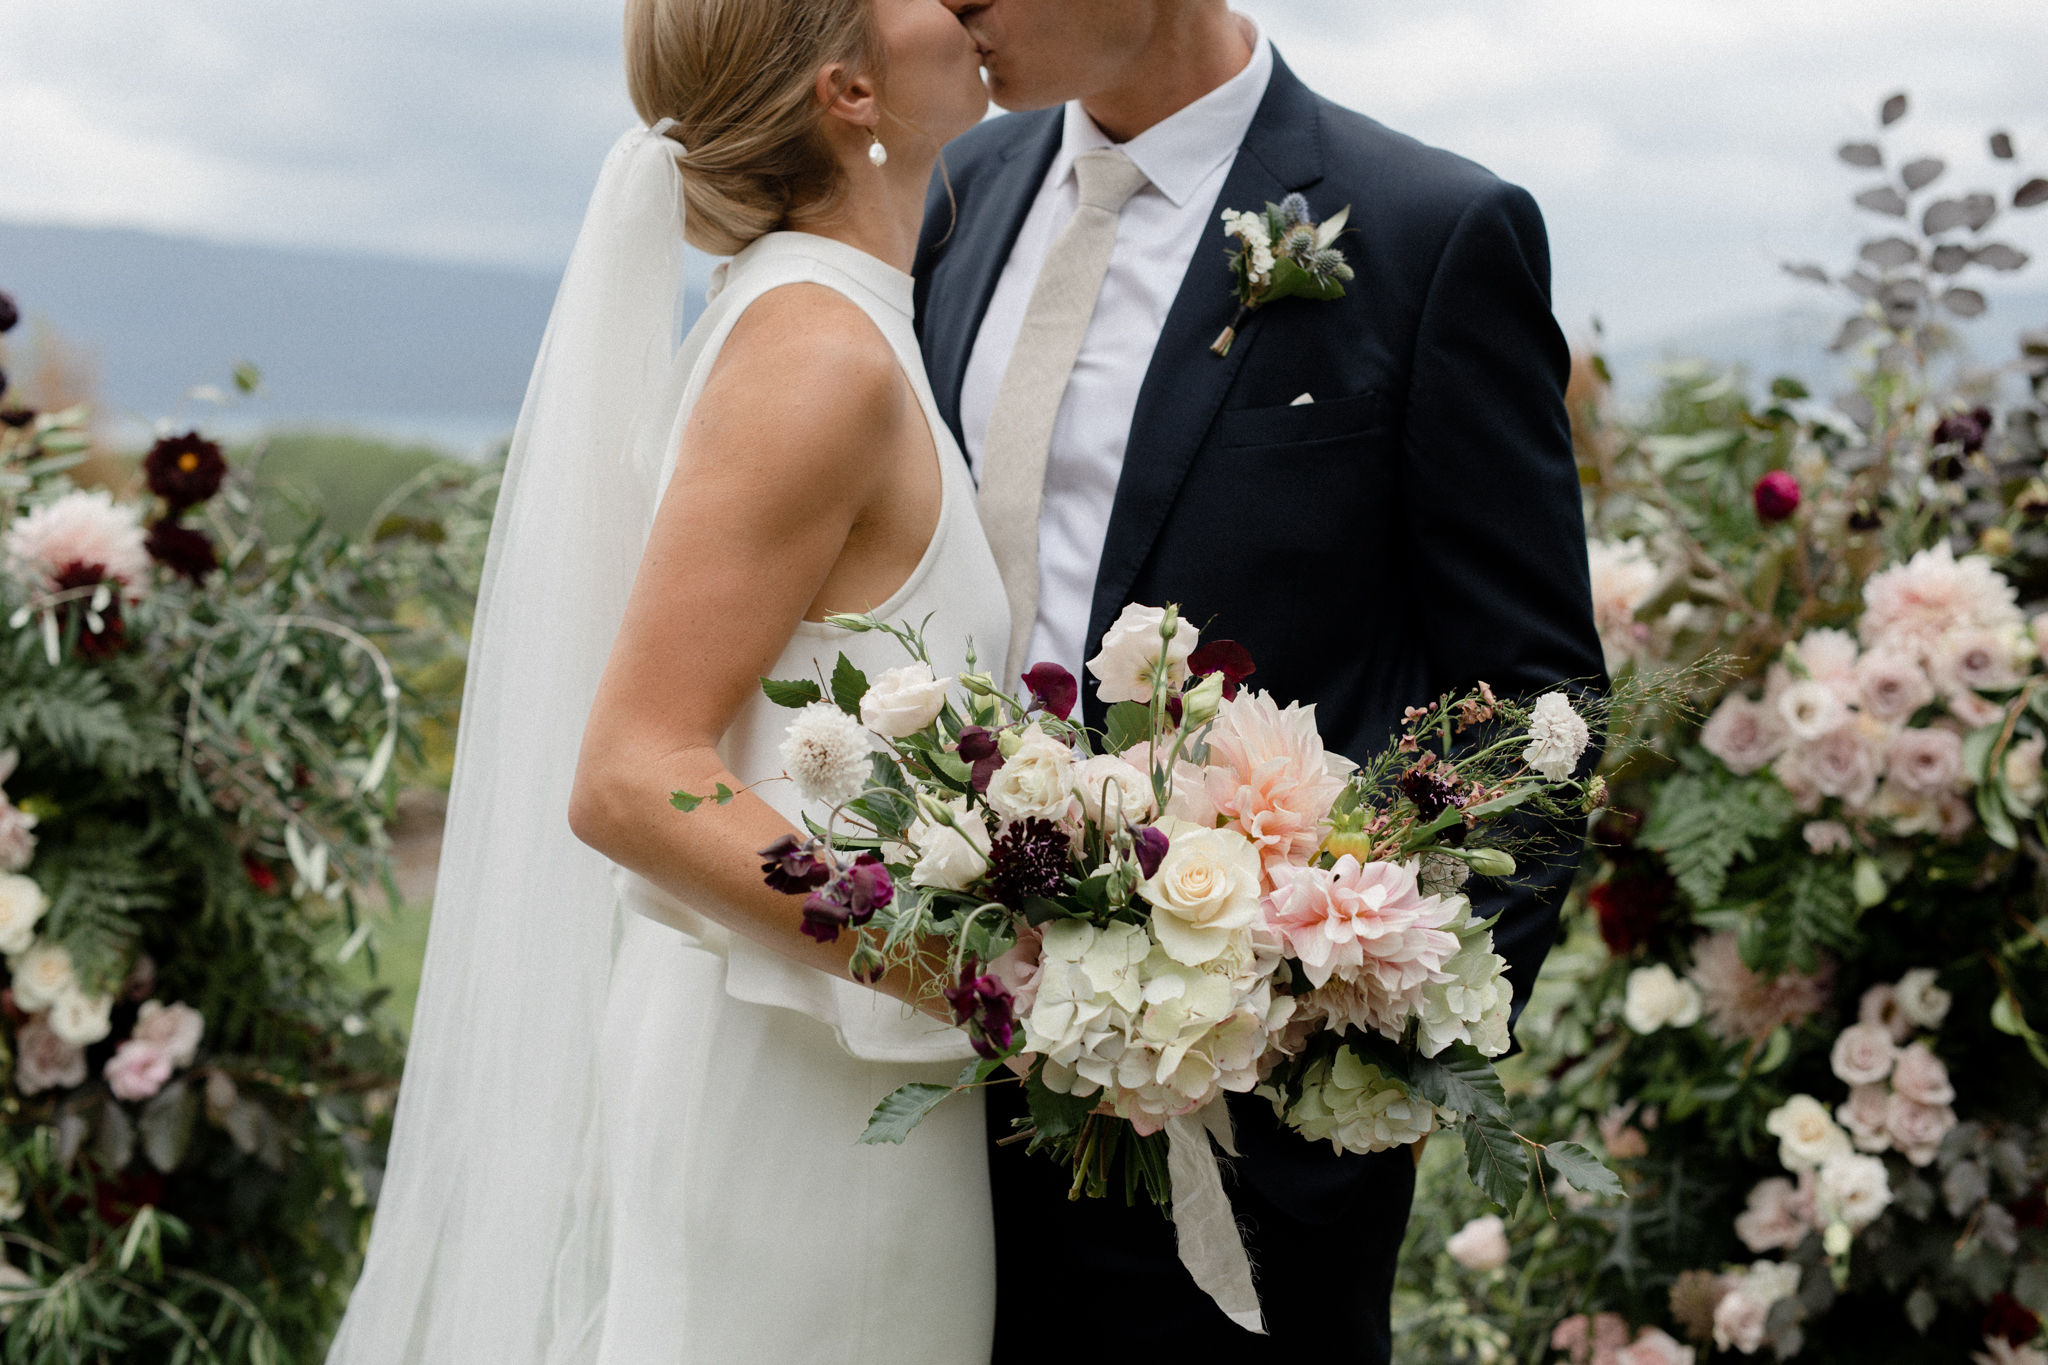 On My Hand wedding flowers - real wedding with black barn elegance - bride and groom kiss between floral arrangements, bride holding bouquet